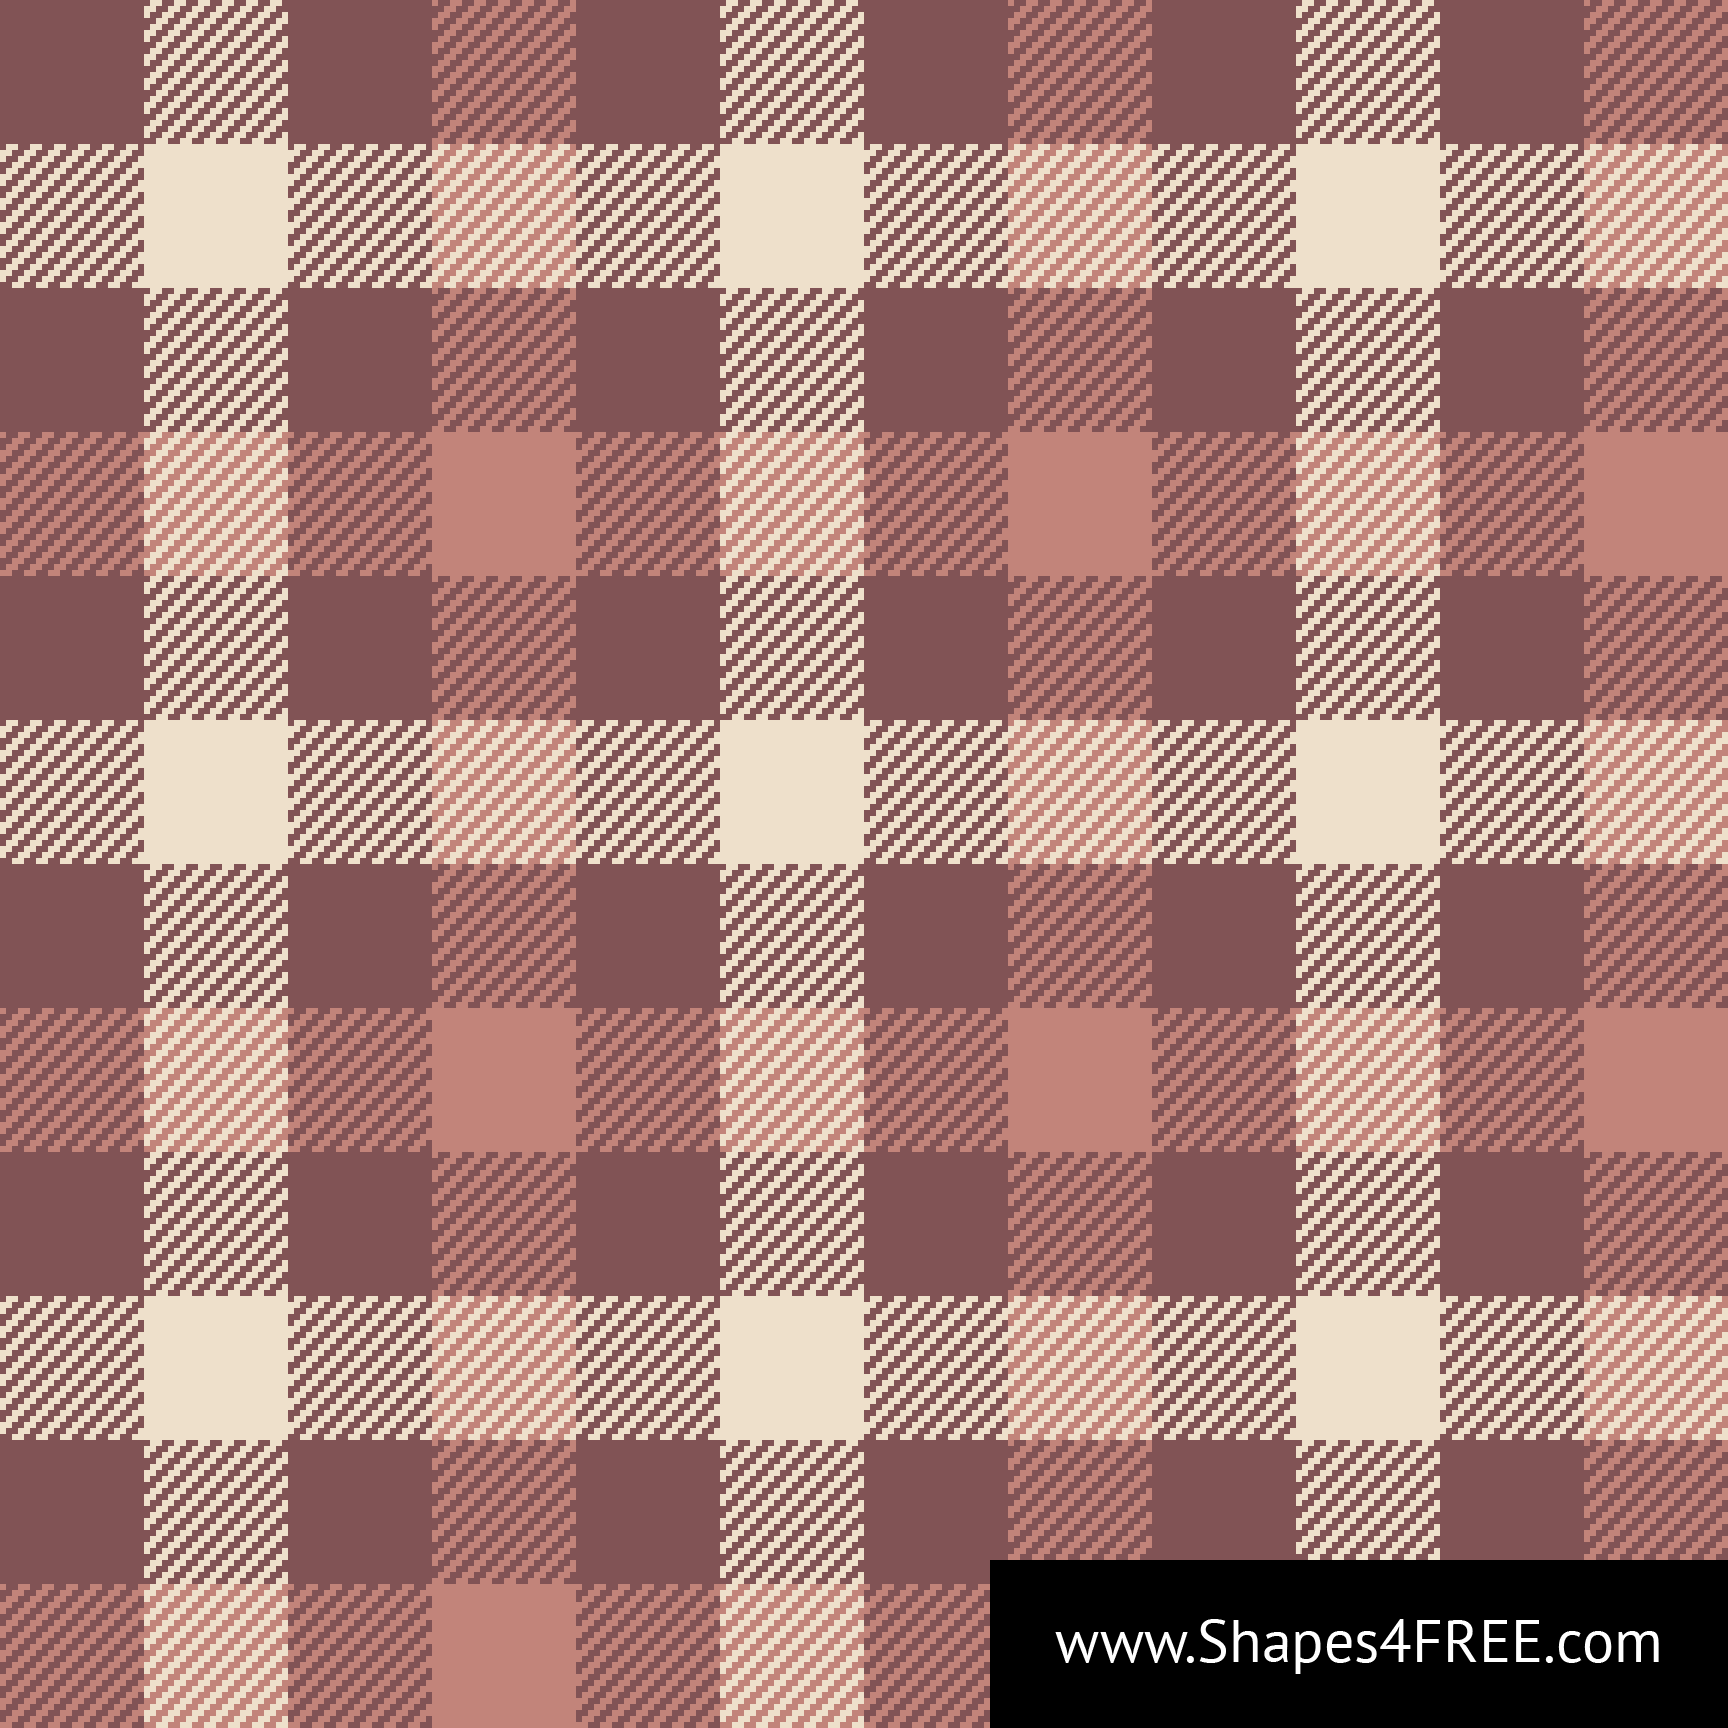 Plaid Taupe Taupe Tartan Check Plaid Pixel Pattern Vector Svg Vector Patterns